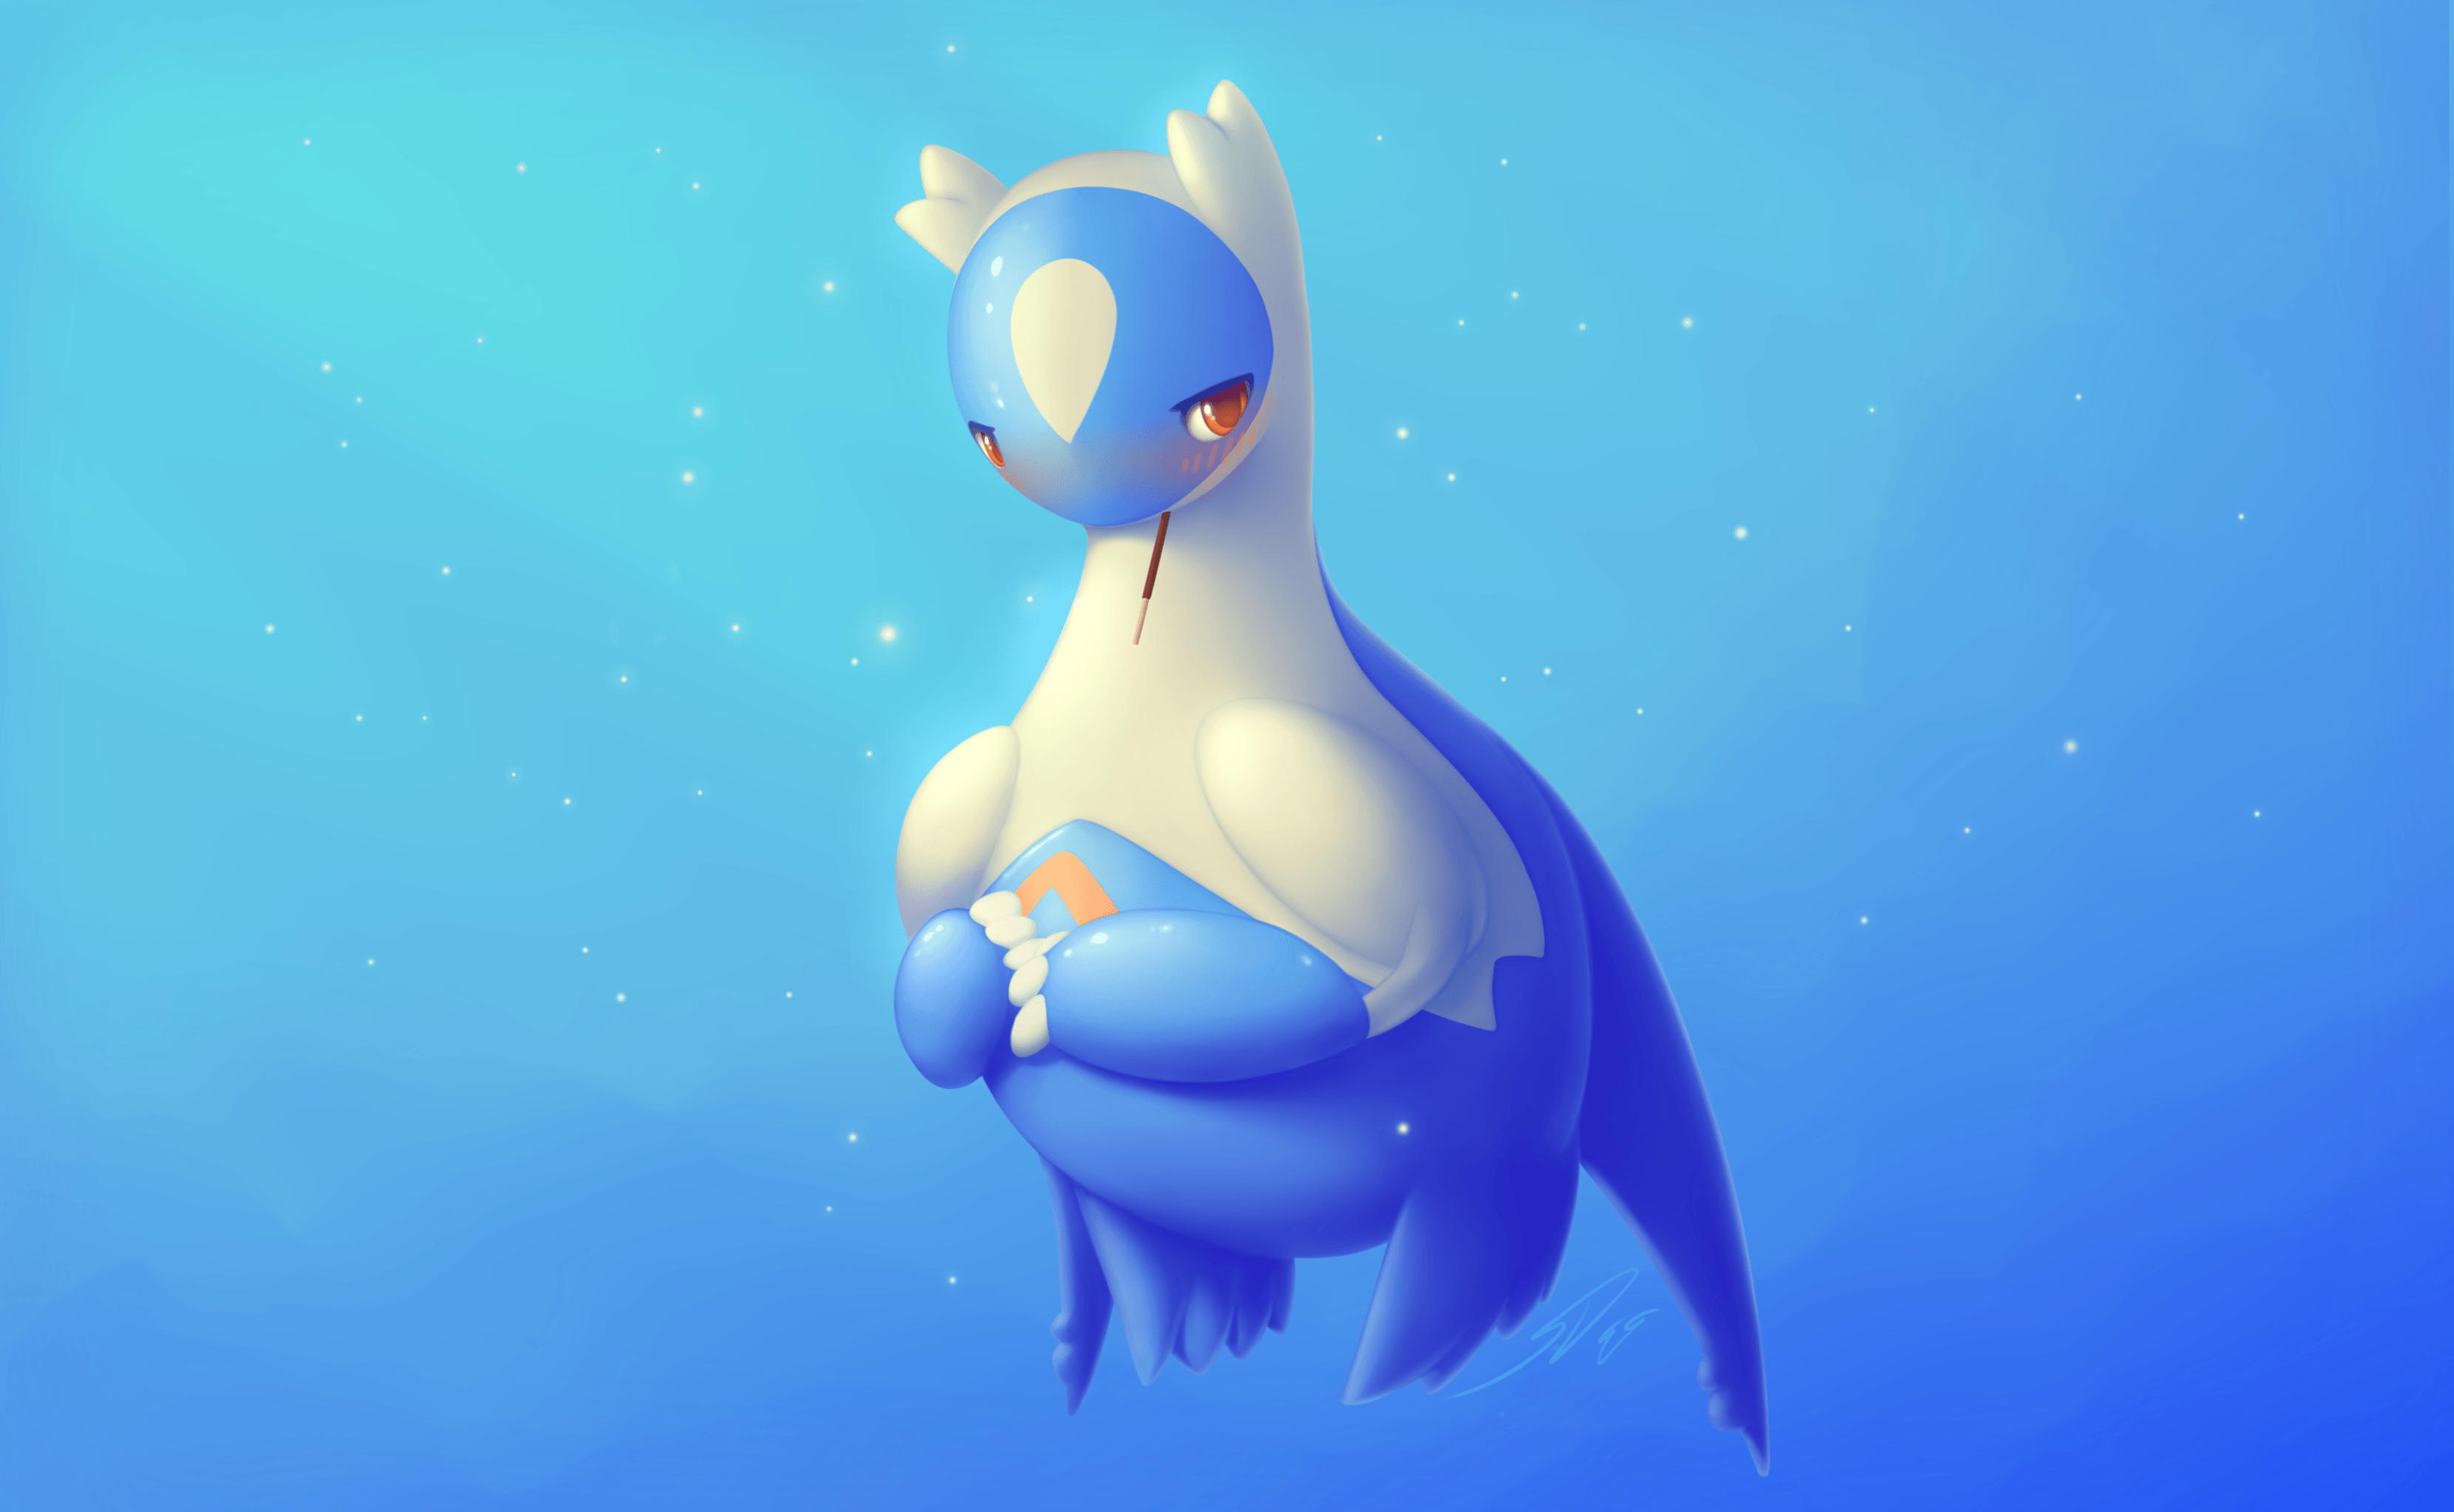 Wallpaper Latios, Pokemon, Blue, HD, Creative Graphics, #12215